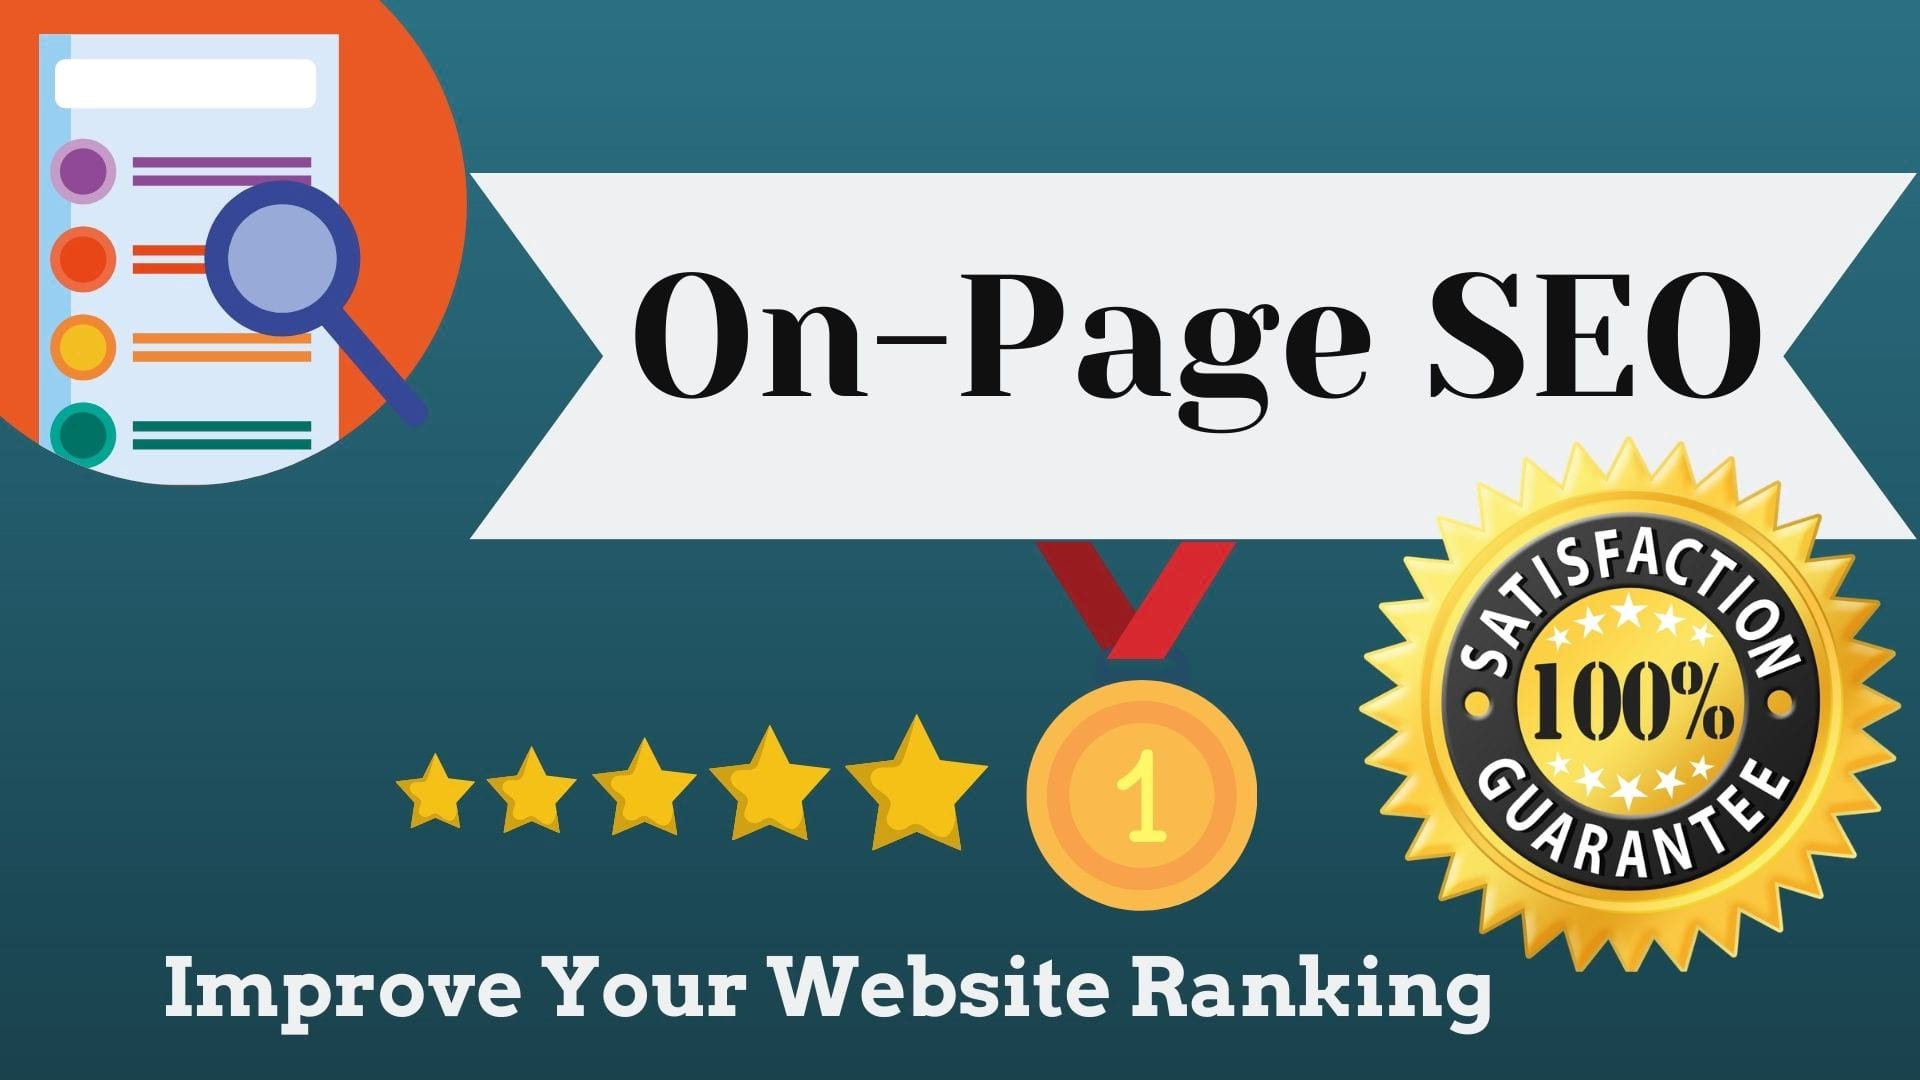 I will do on page seo optimization for your site